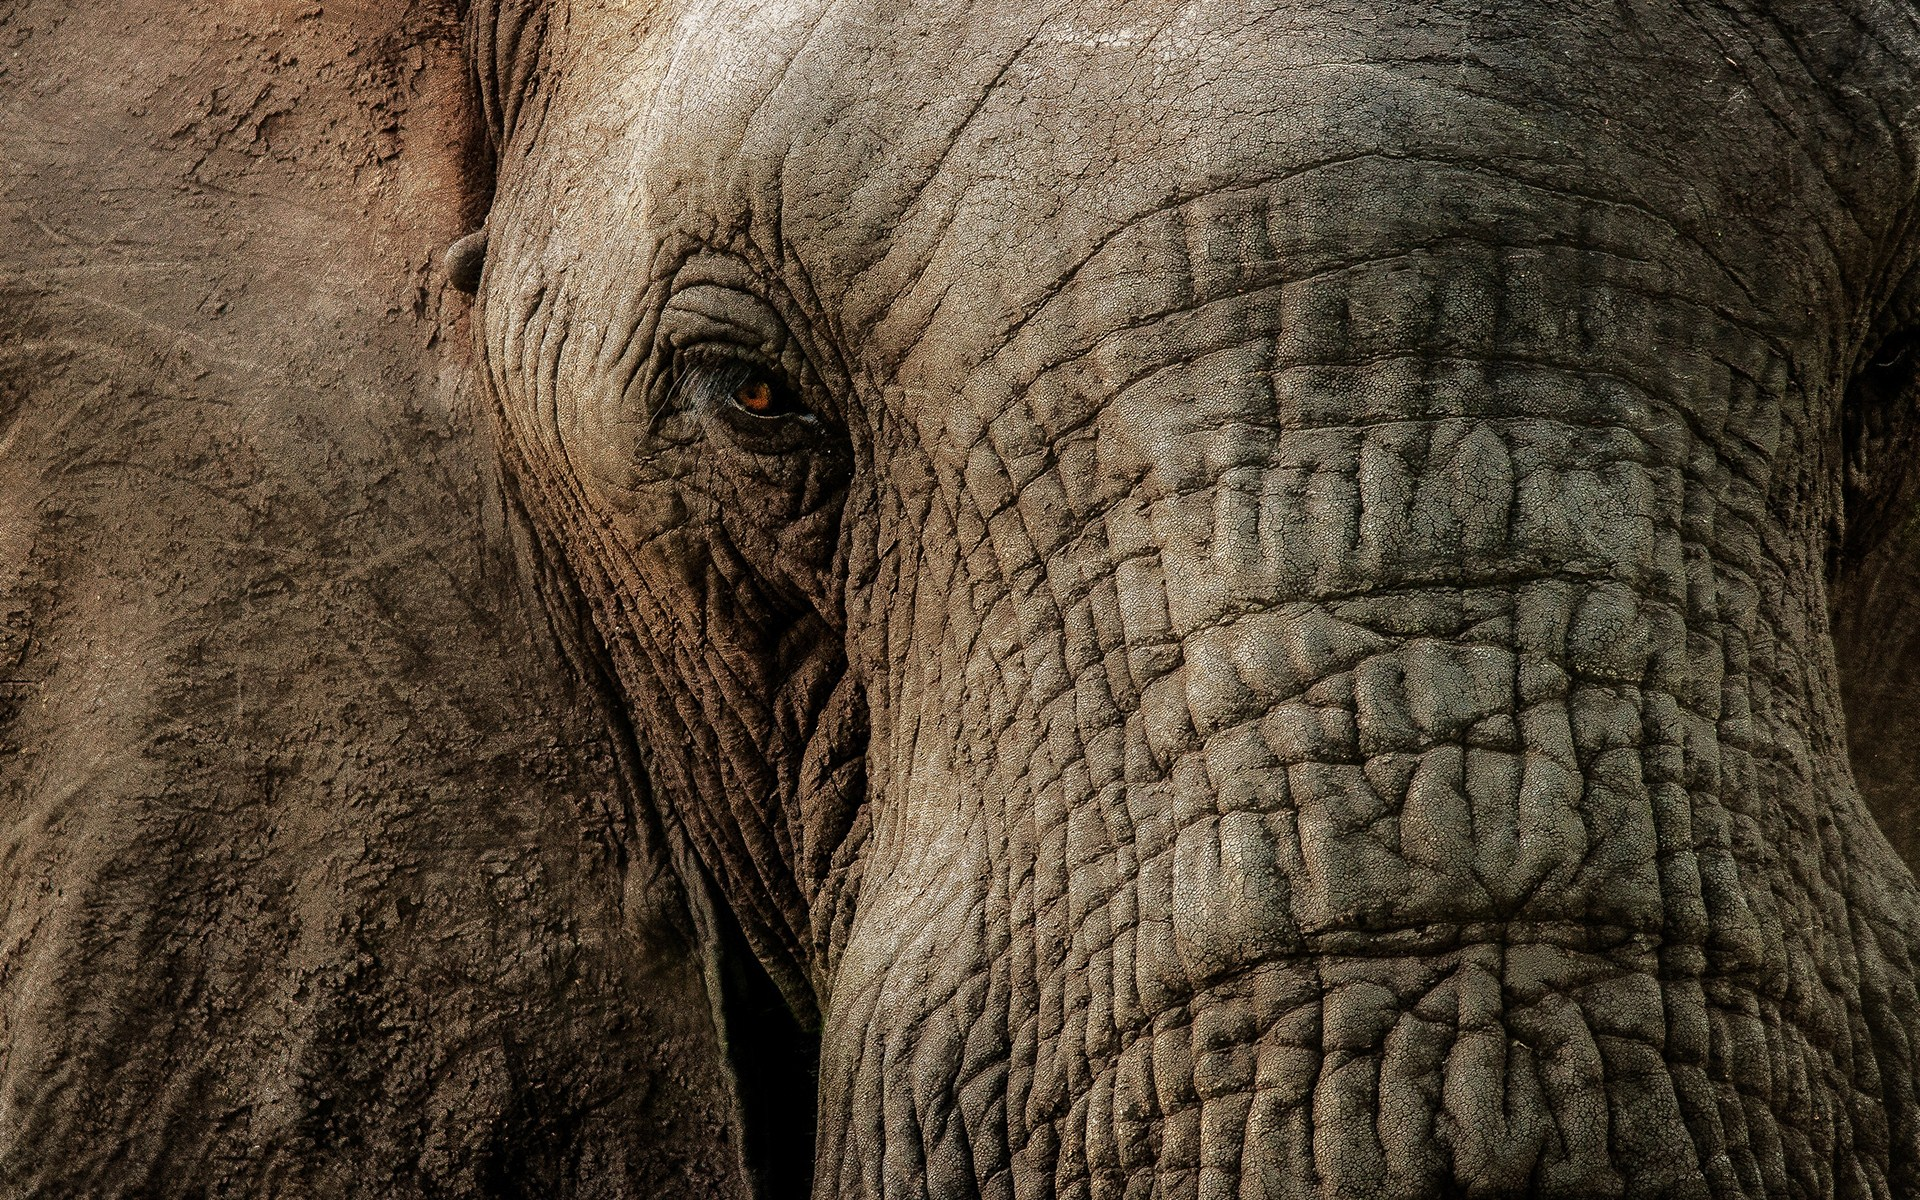 elephant macro wallpaper - hd desktop wallpapers | 4k hd